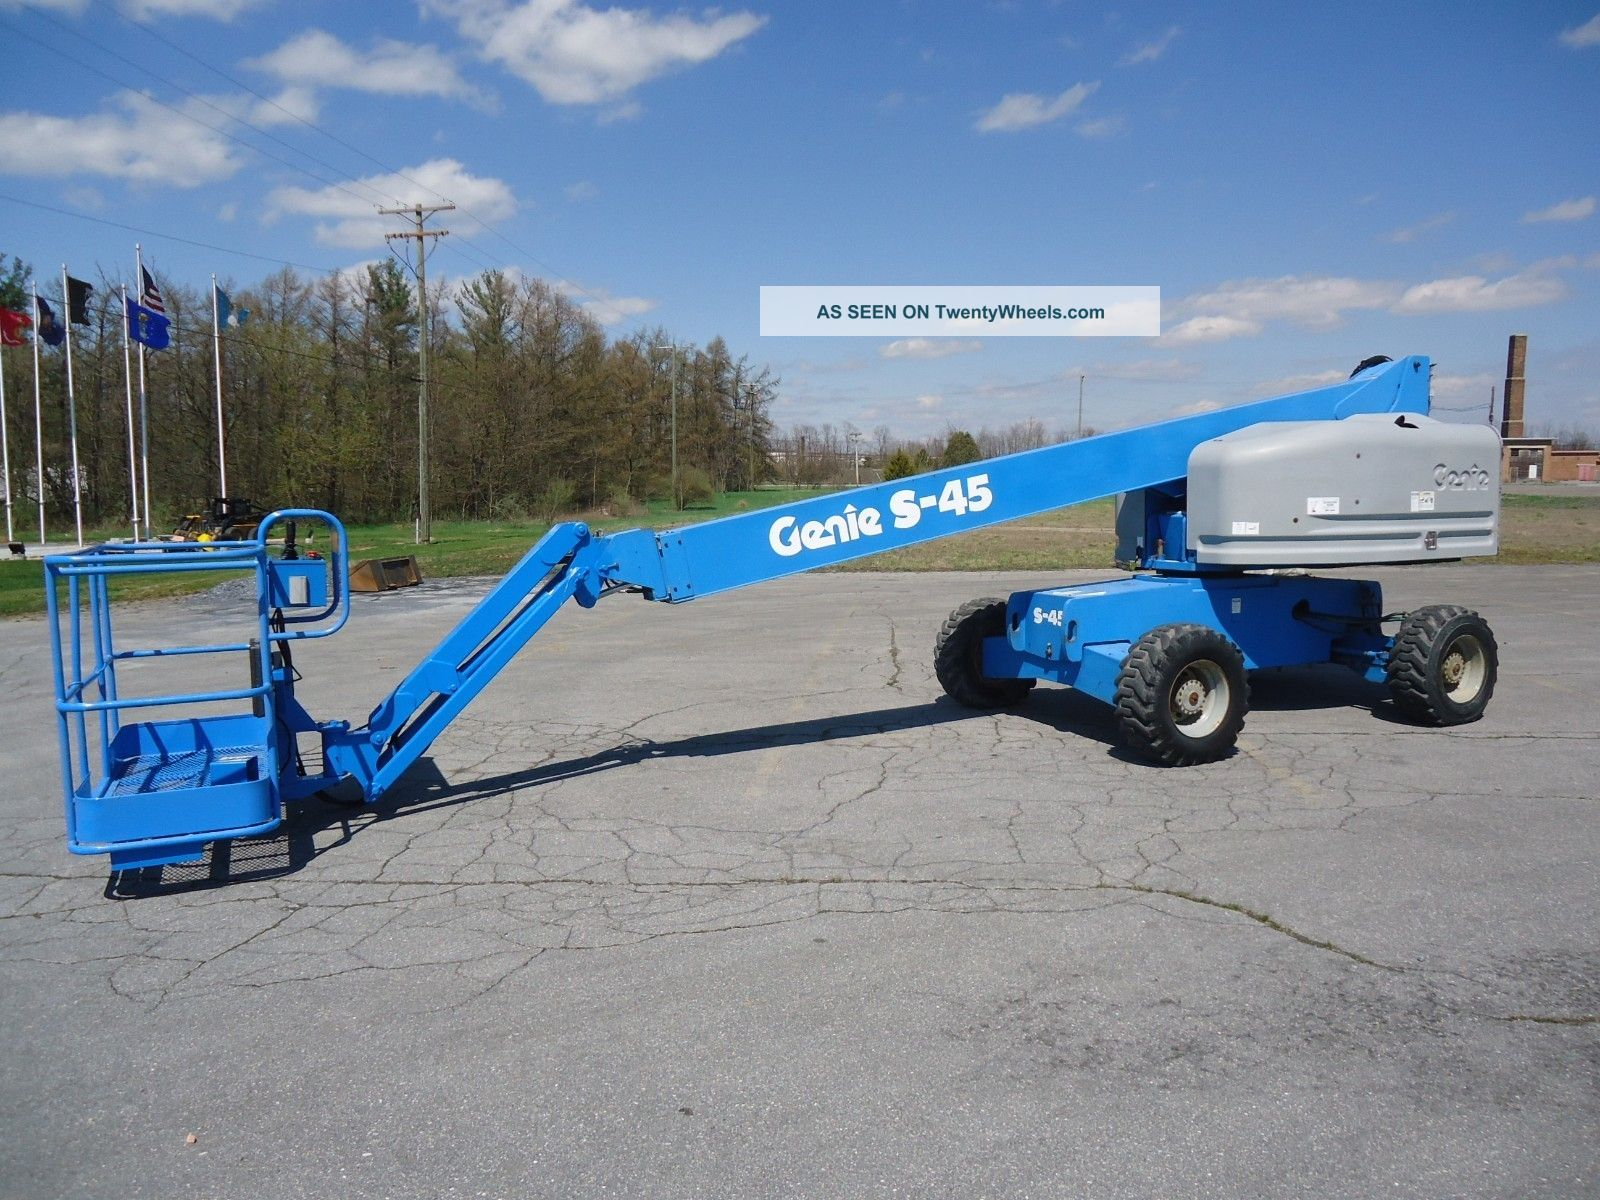 1999 Genie S45 Telescopic Boomlift Manlift Man Lift Aerial Platform Boom Scissor & Boom Lifts photo